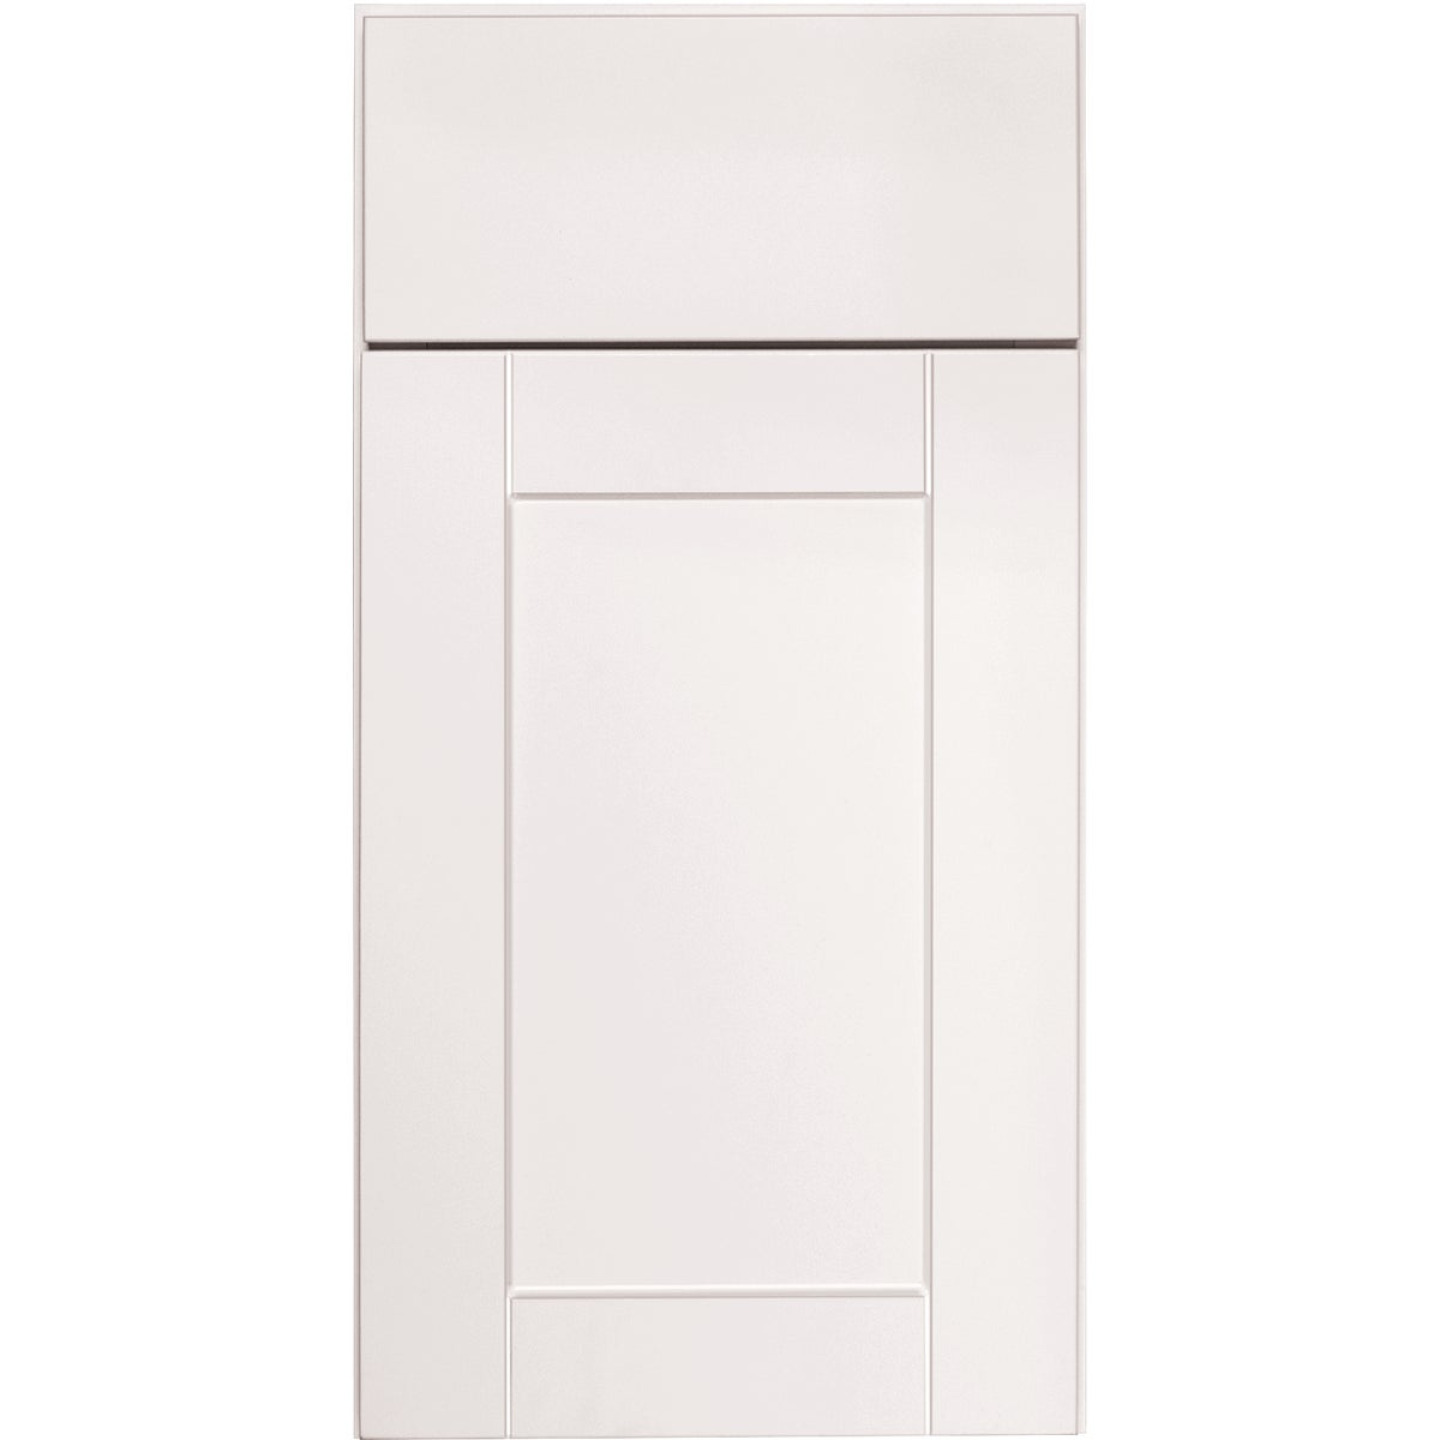 Continental Cabinets Andover Shaker 36 In. W x 34-1/2 In. H x 24 In. D White Thermofoil Sink Base Kitchen Cabinet Image 3